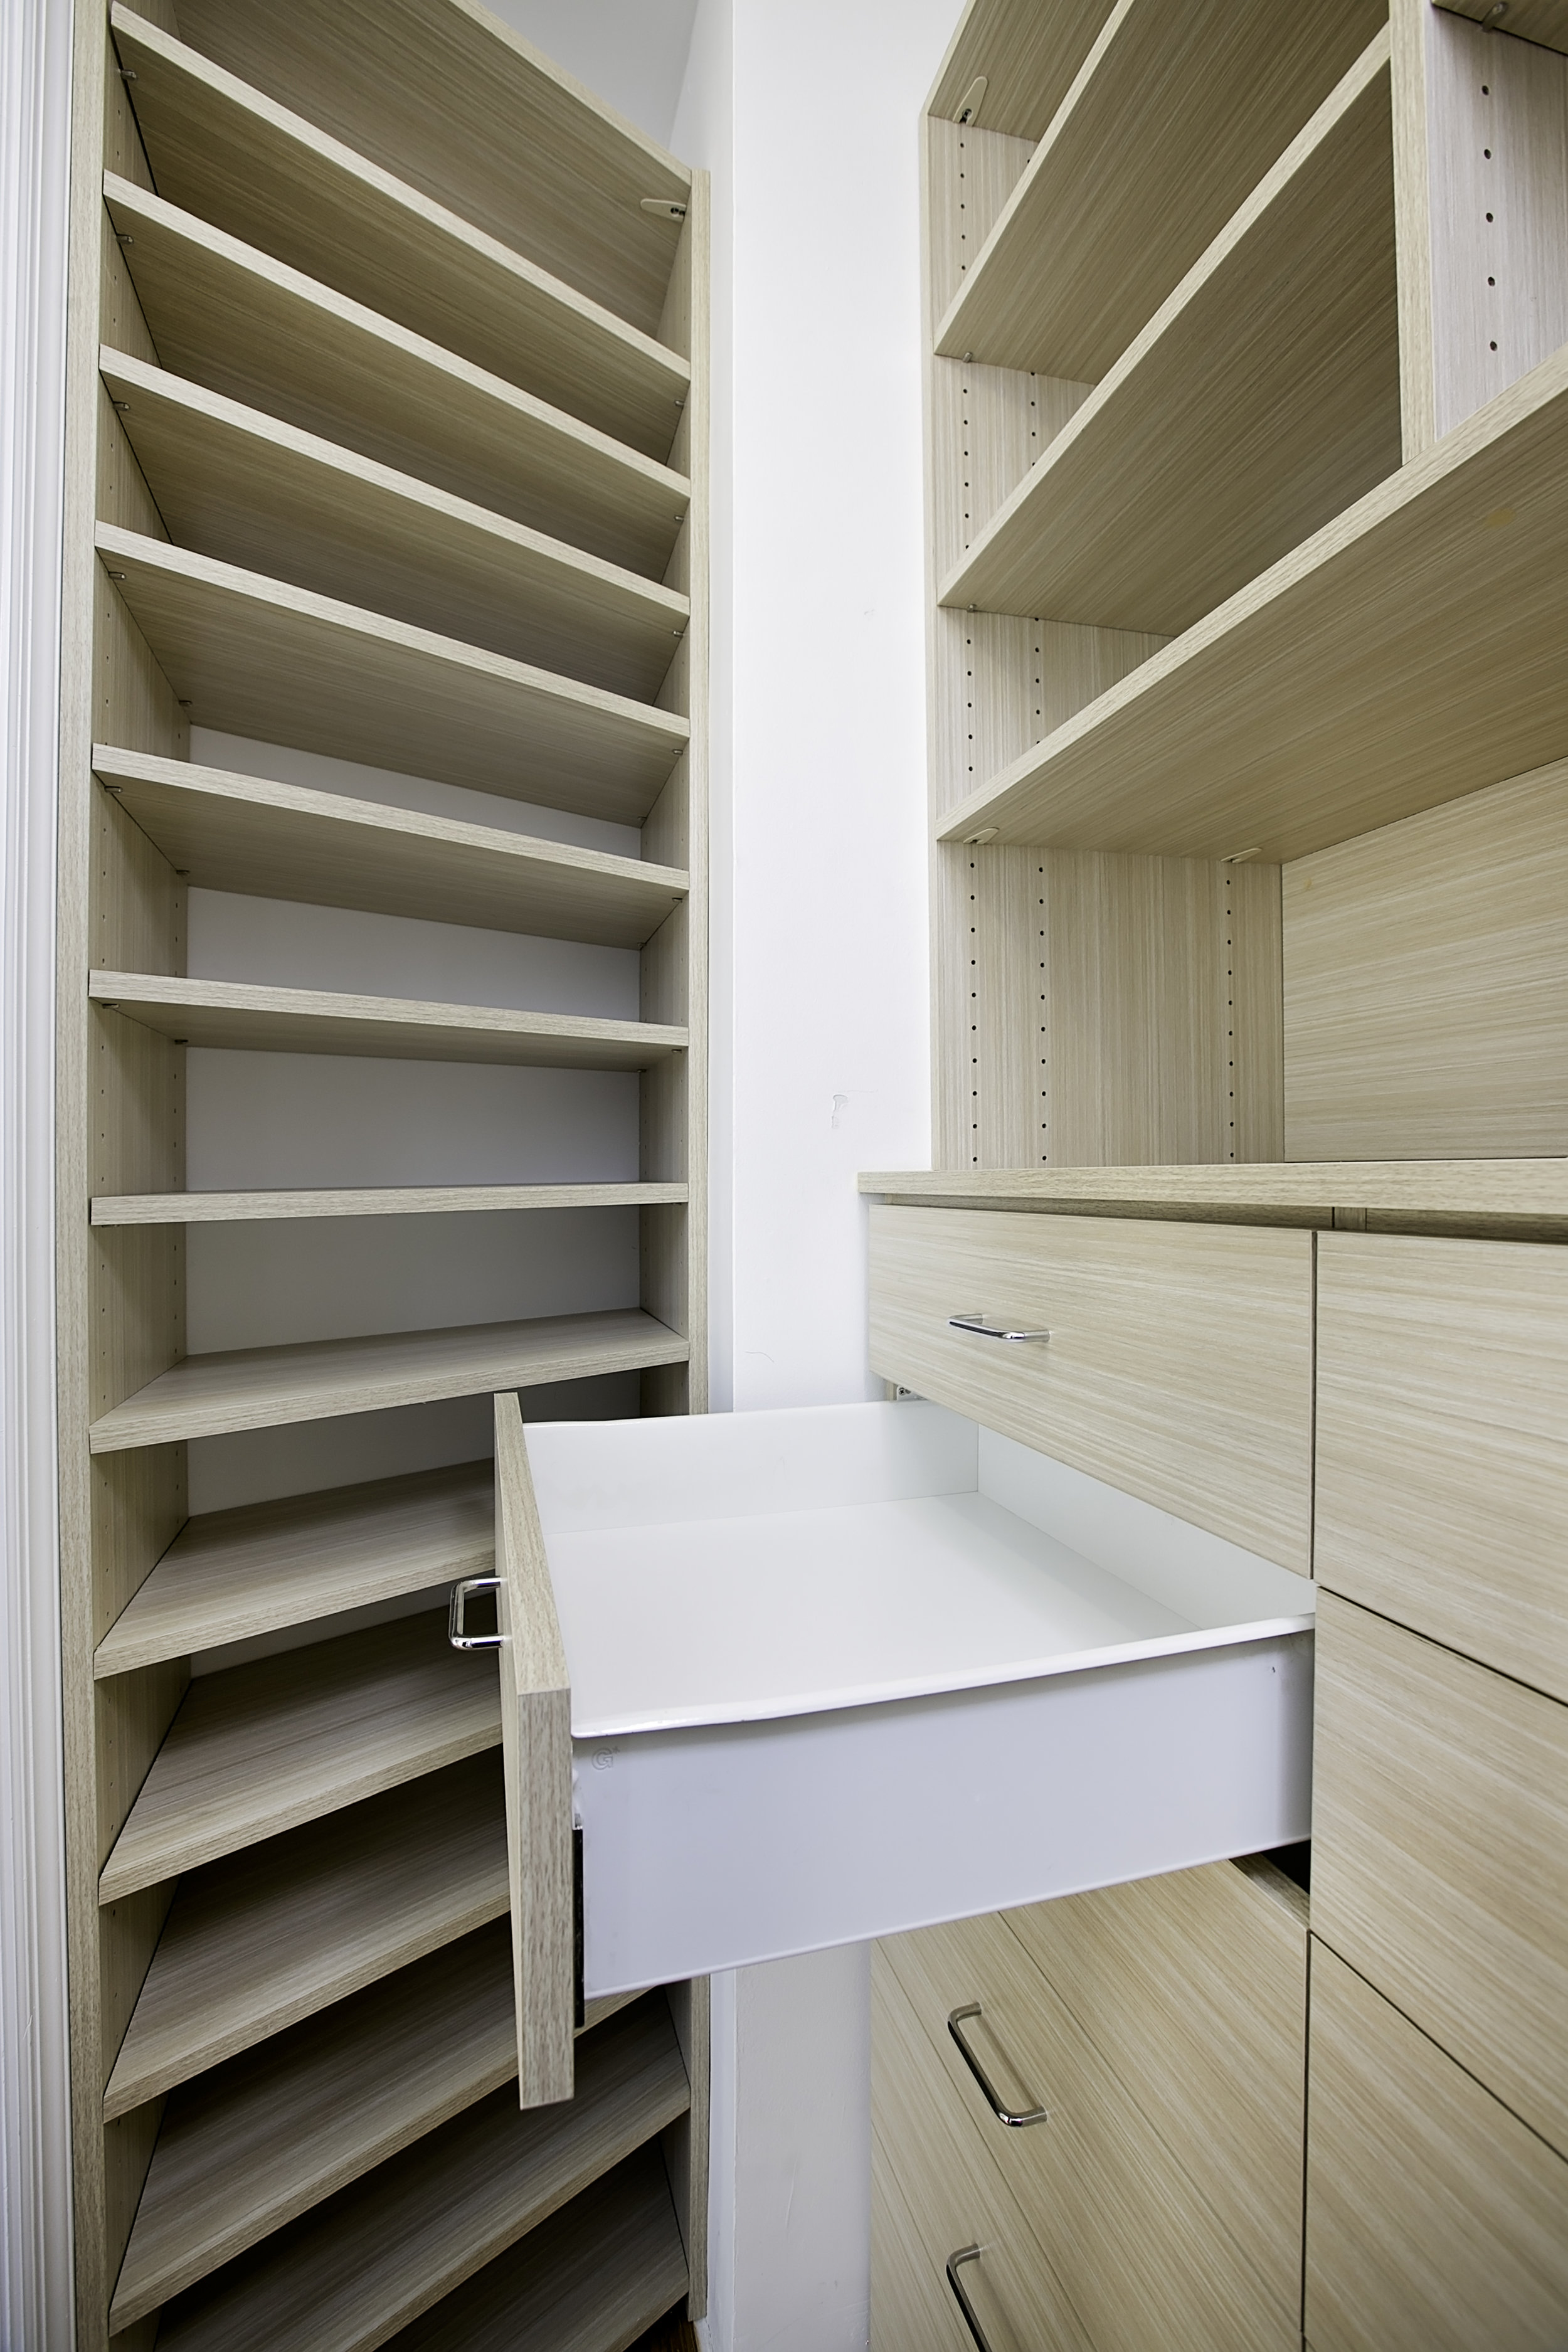 Challenging Spaces - Conquer every odd angle and use it for storage!